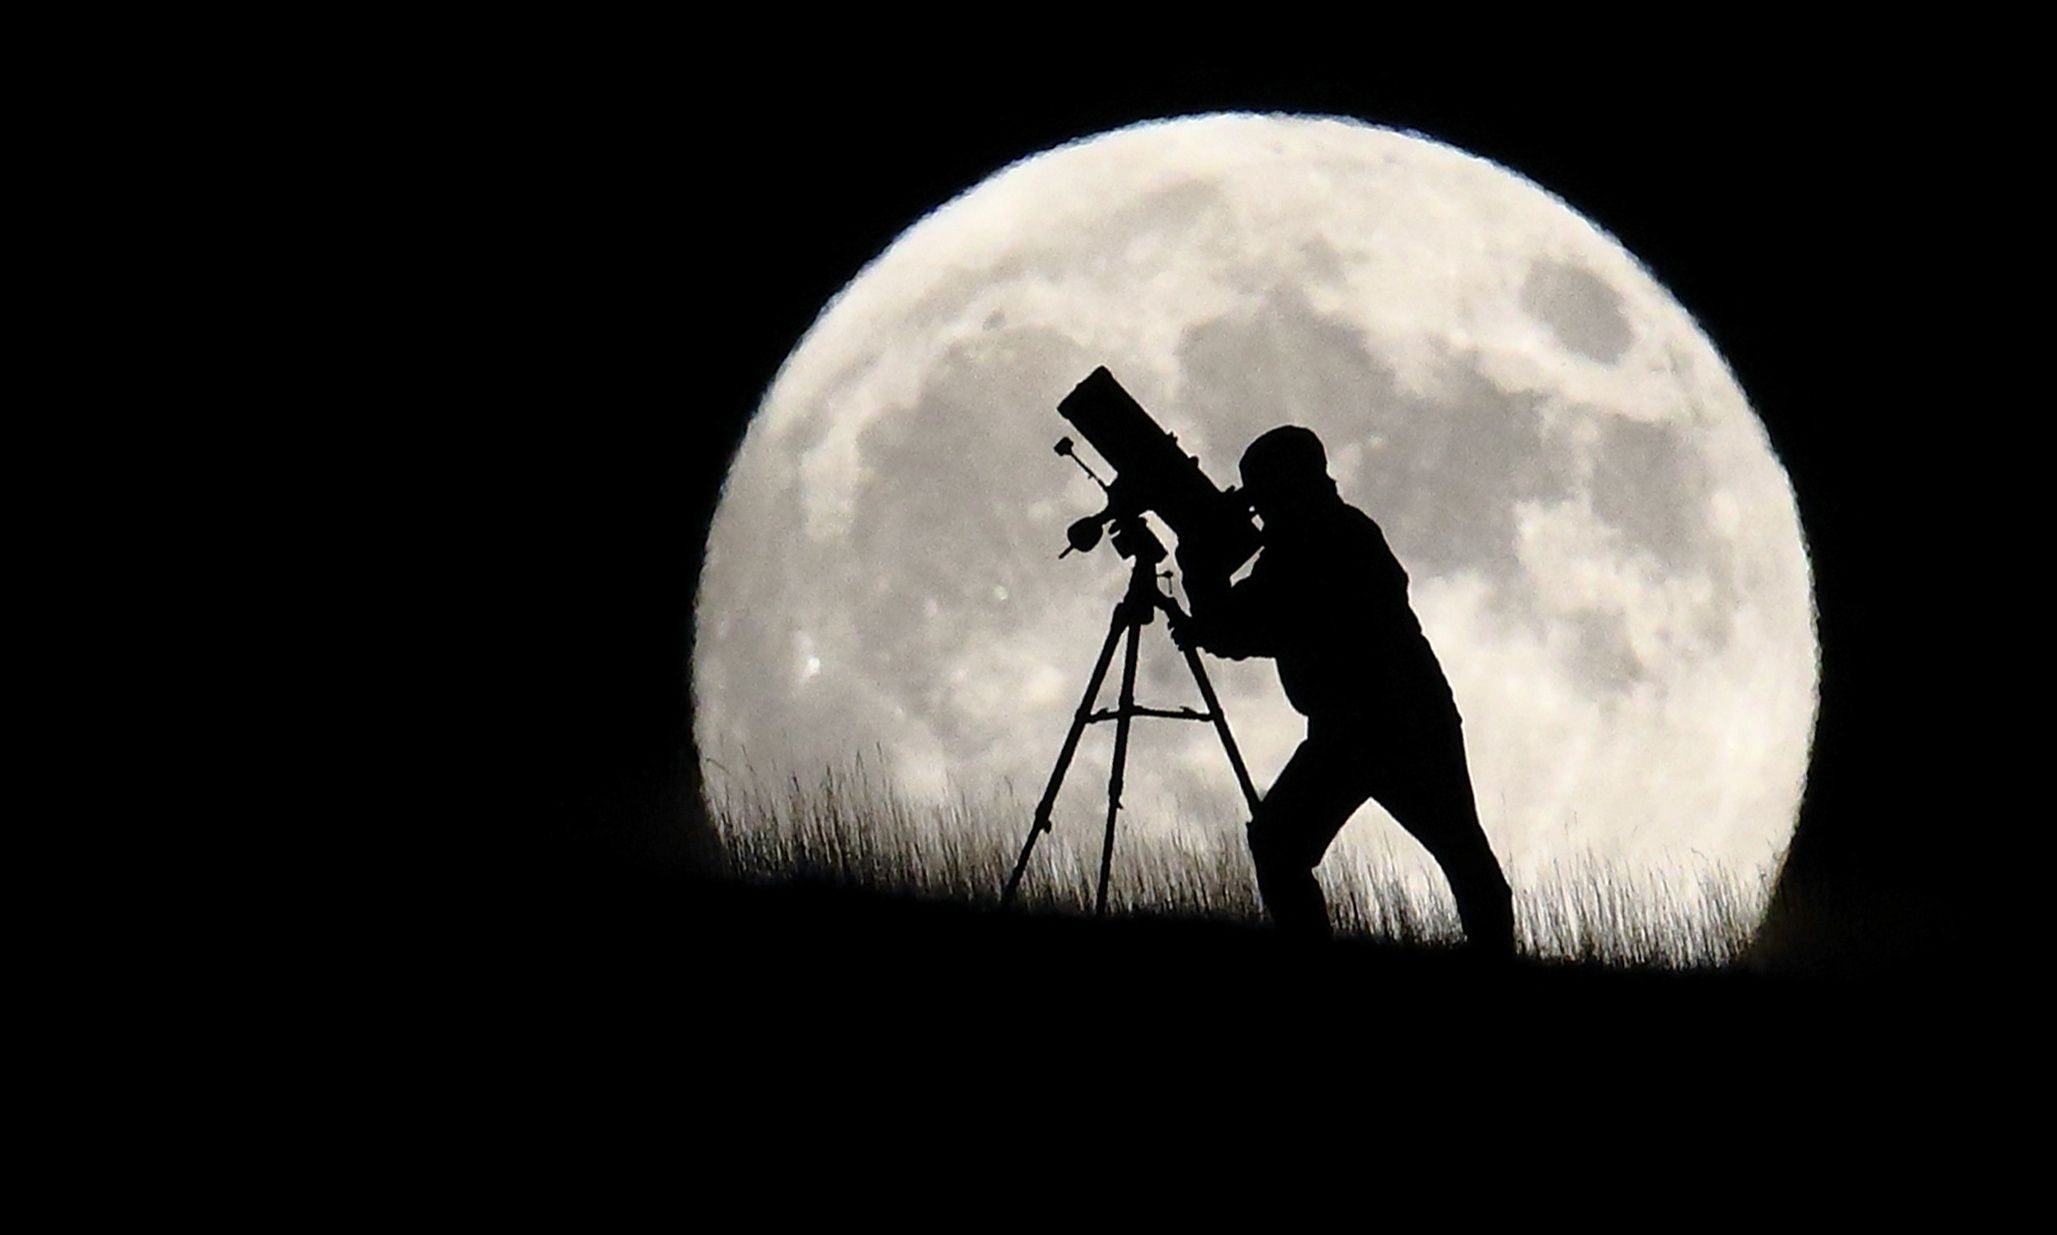 'Blood moon' rises as super moon and lunar eclipse combine – pictures from around the world 9/2015